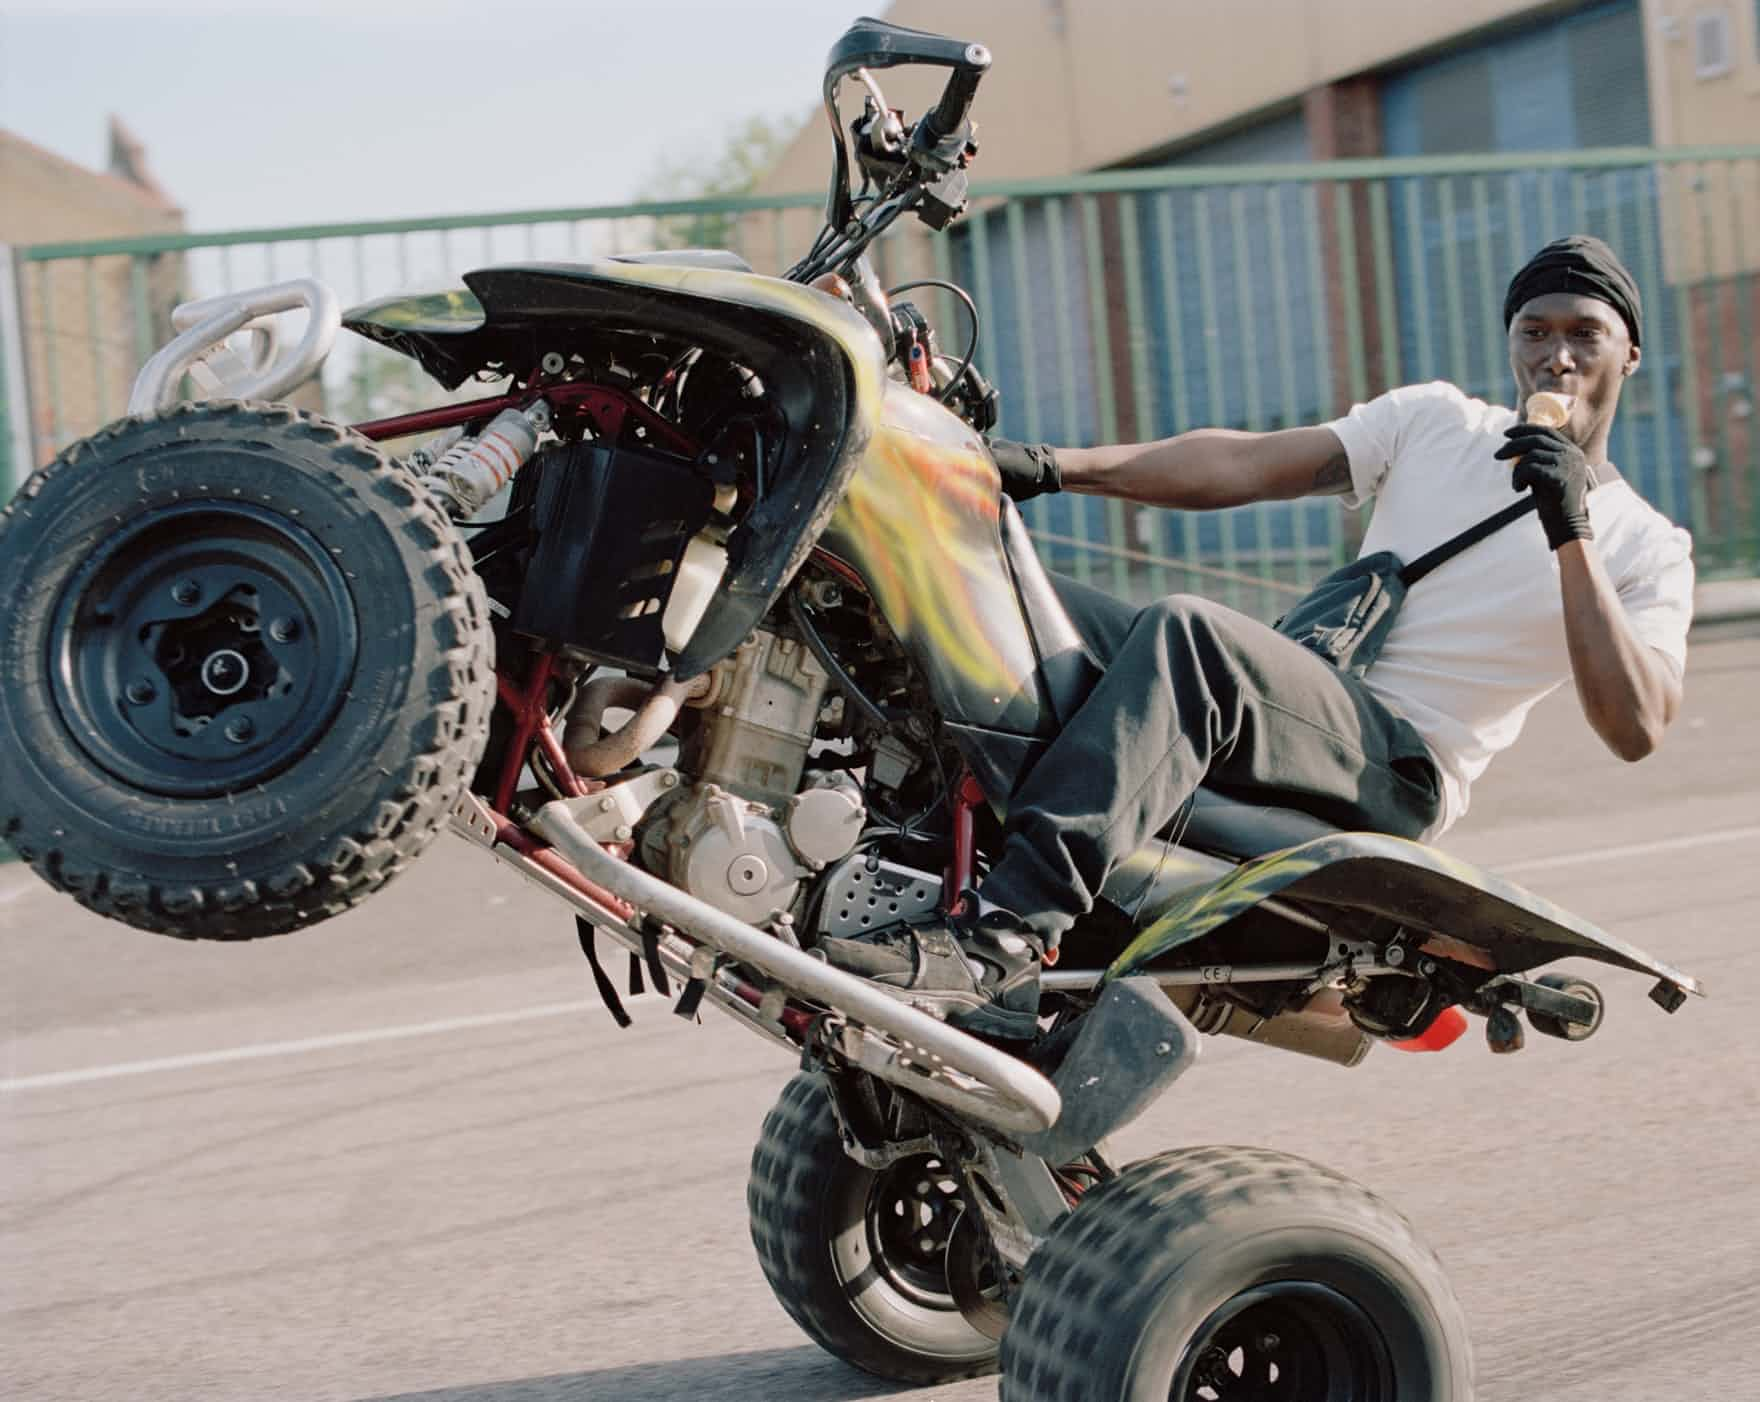 - Mr Figo wheelie-ing his quad in Croydon, eating a 99 ice-creamPhotographer Spencer Murphy has documented a proud and noisy subculture: BikeLife, where riders congregate to pull tricks and indulge their need for speed. He introduces each of the images: 'What drew me to this unique subculture was the dynamism and the style. It seemed to reflect the rebellious draw that skateboarding had for me as a teenager. The people and the sense of community held my interest and kept me going back.'Urban Dirt Bikersby Spencer Murphy is published by Hoxton Mini Press. All photographs: Spencer Murphy